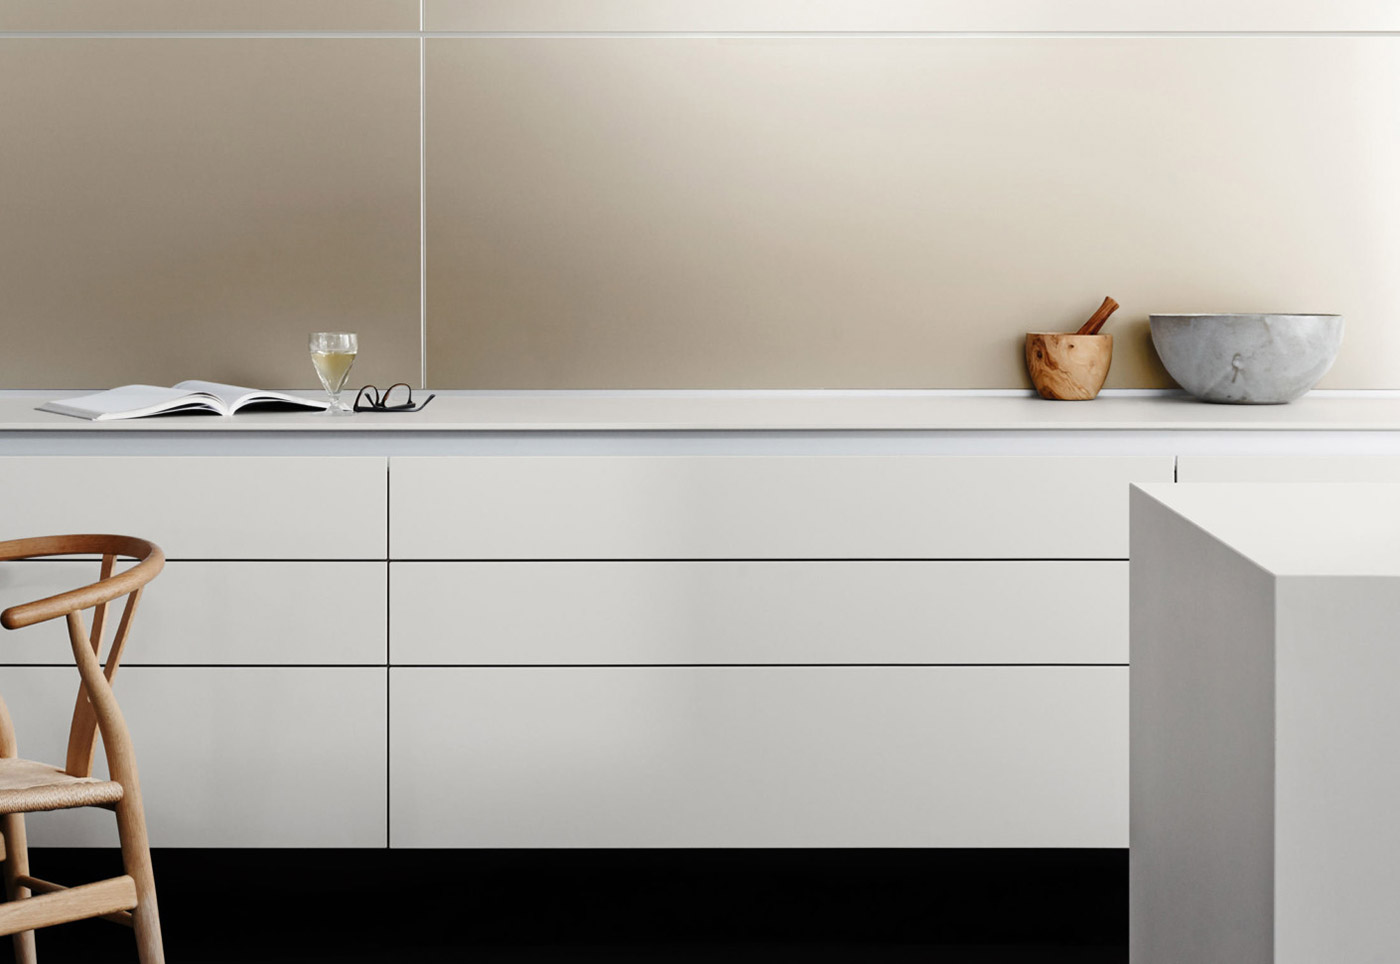 Obegi-Home-Bulthaup-Kitchens-b3-Multifunktionswand-03